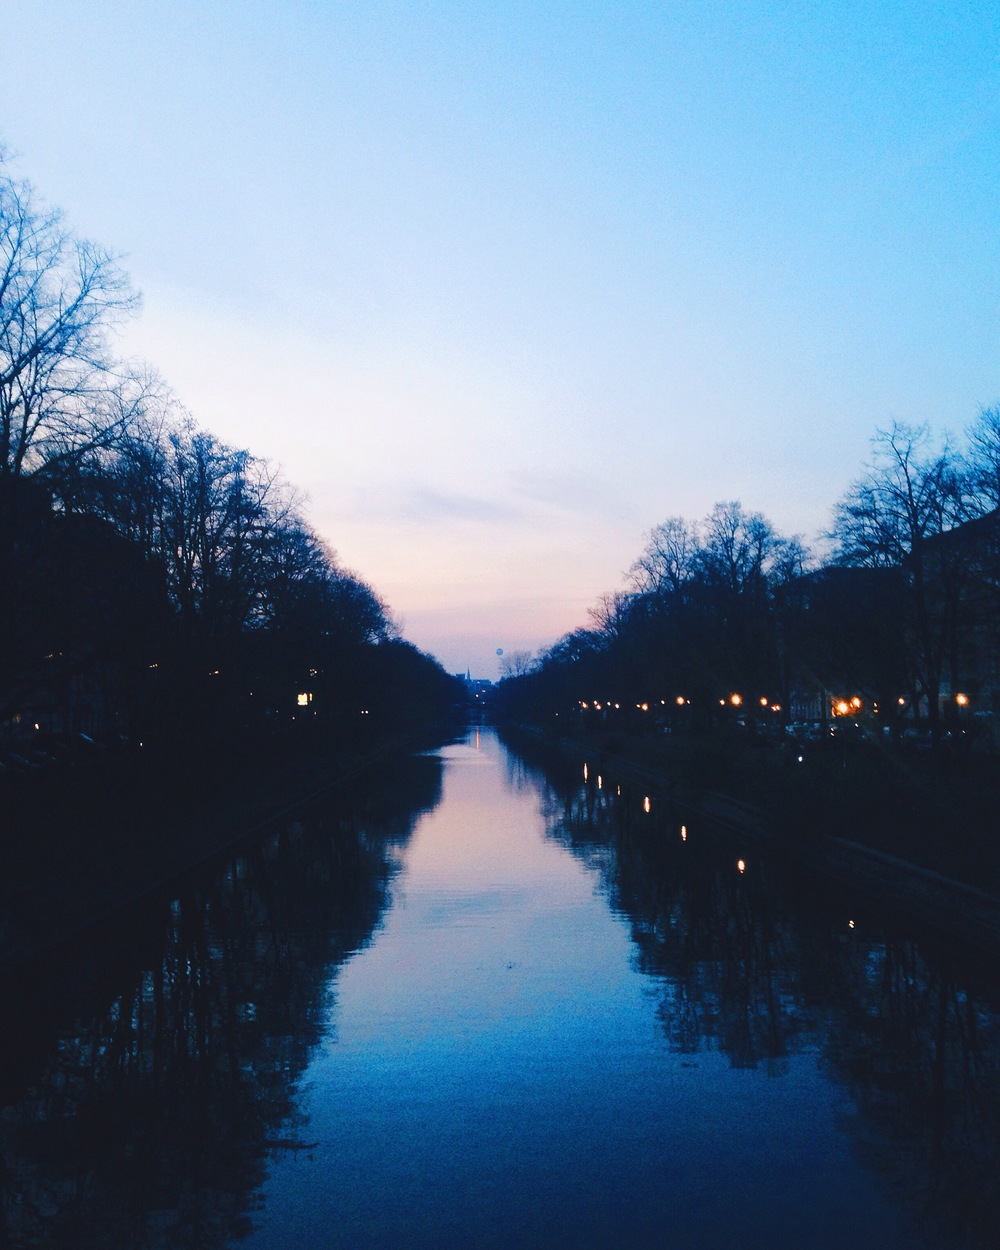 The canals of Kreuzberg